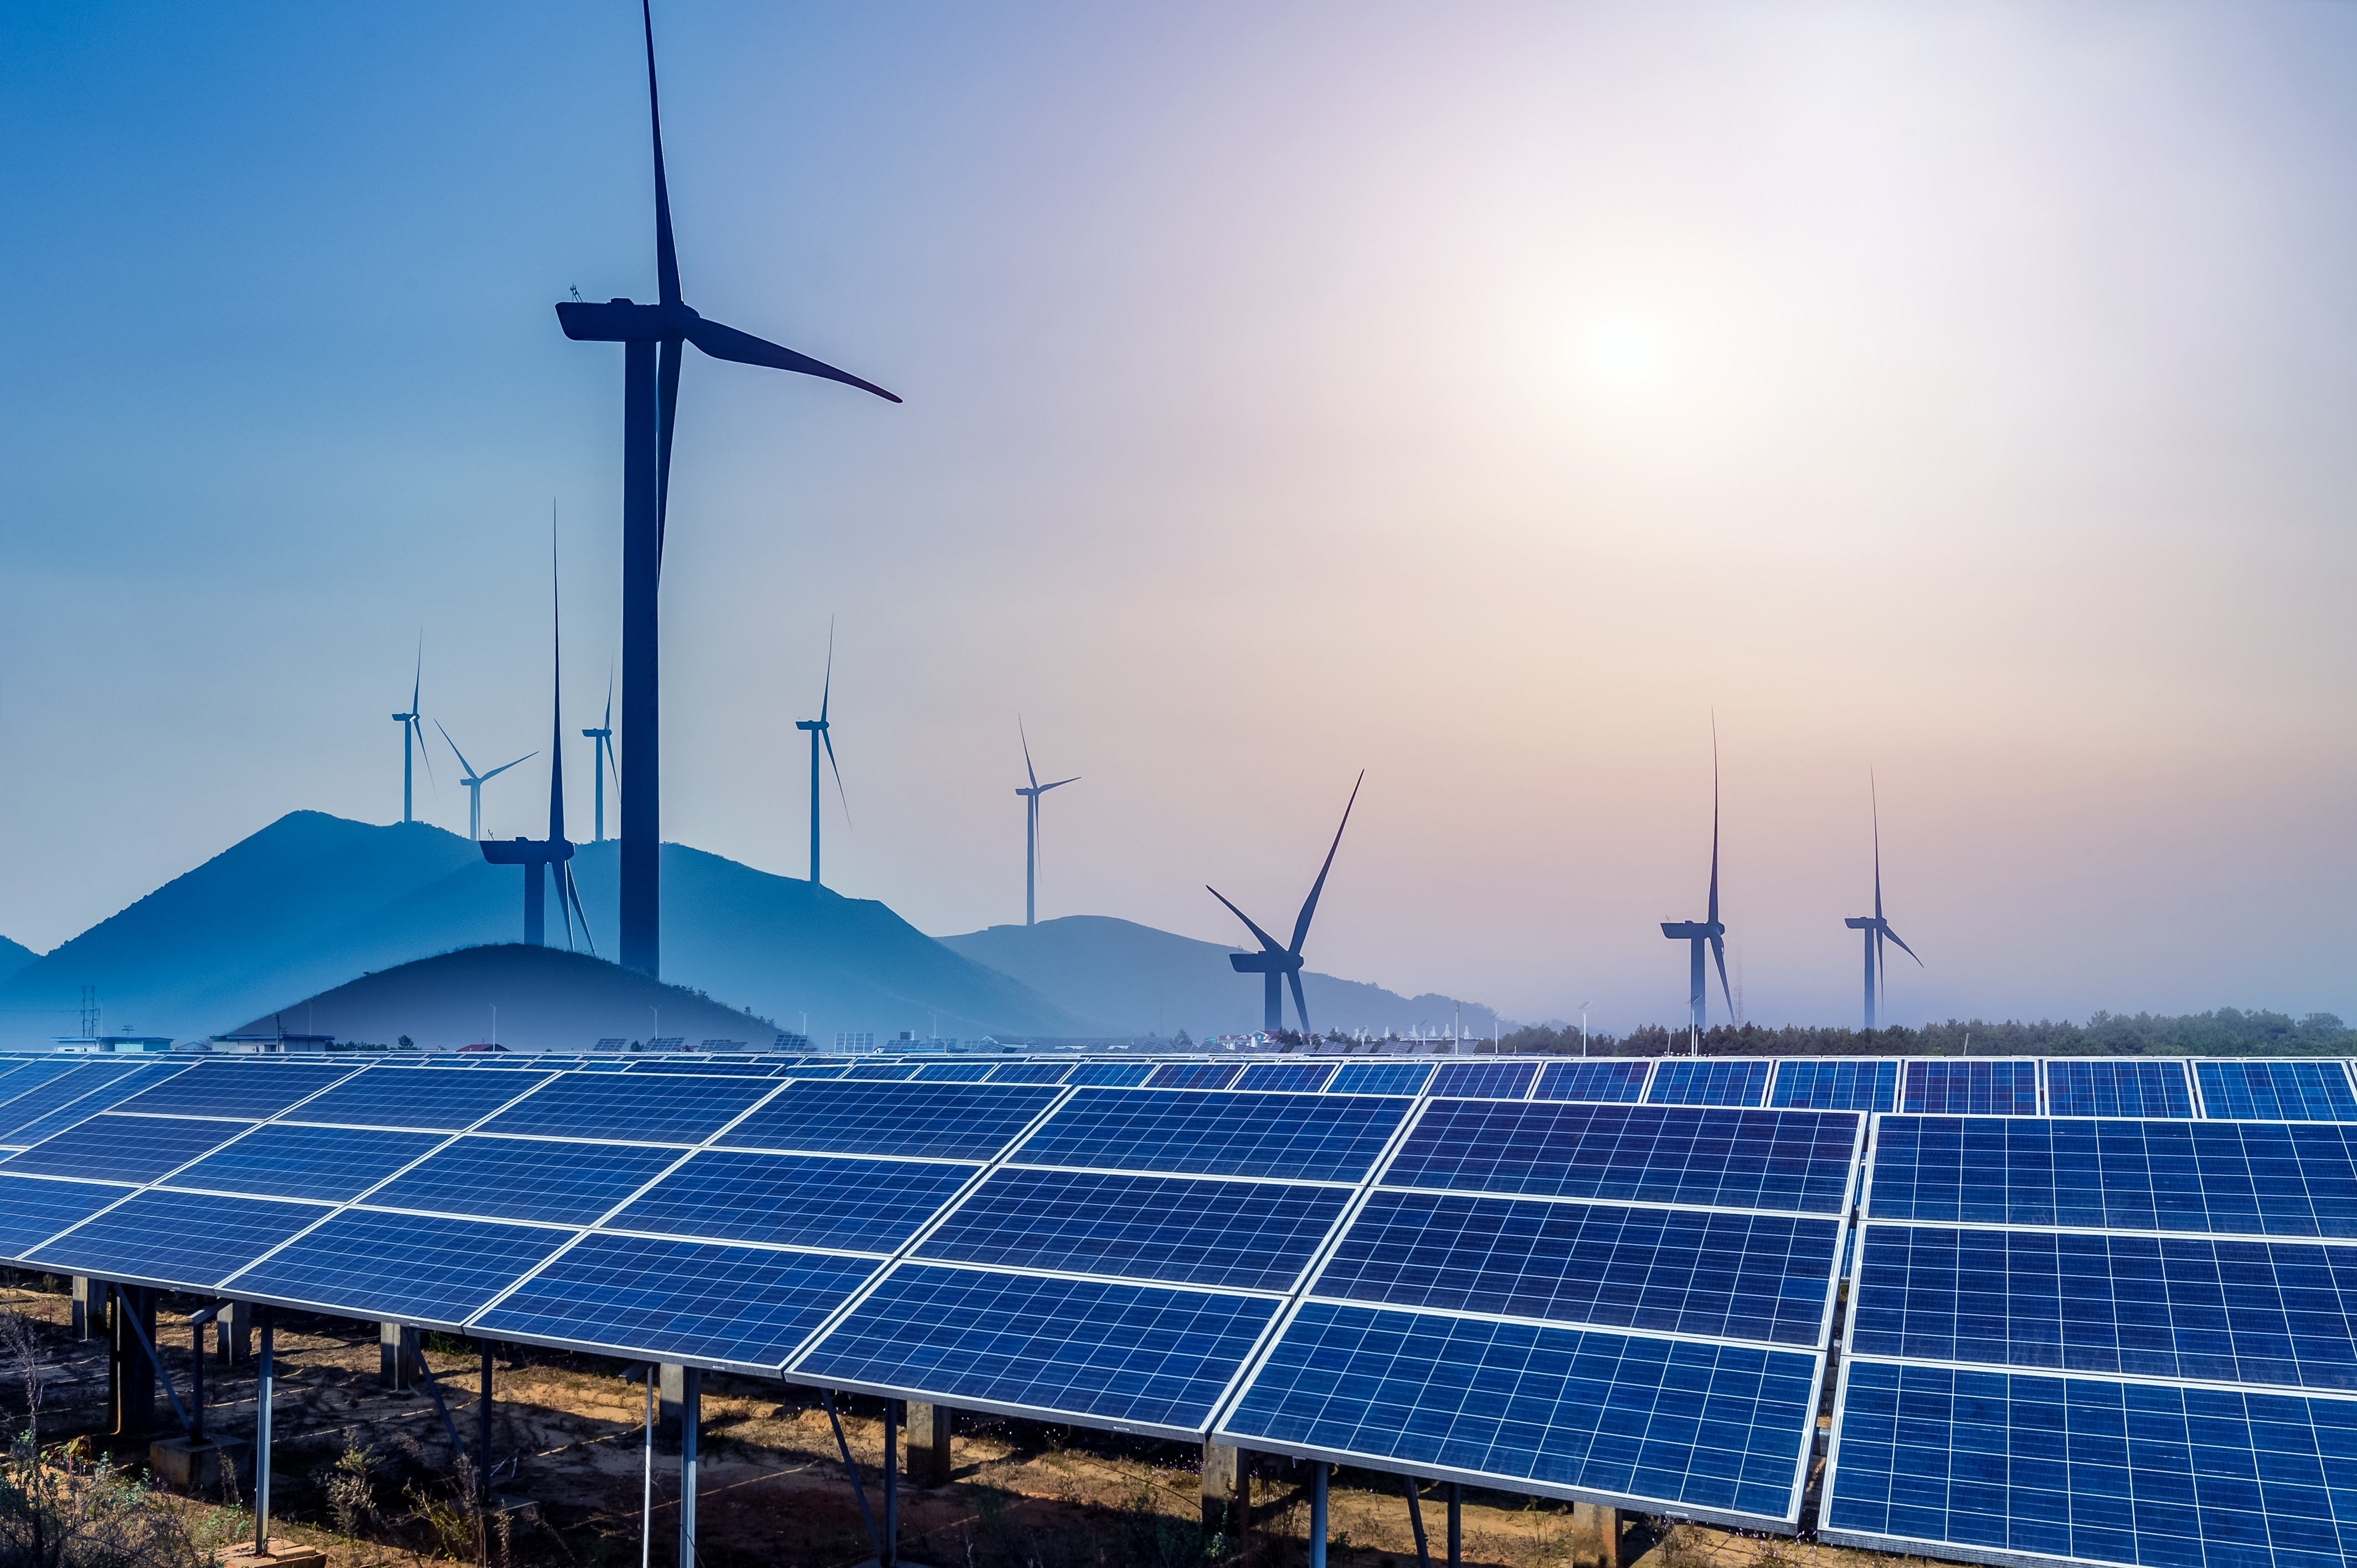 Policies and Changes Needed to Achieve UK's Target of Net-Zero Emissions from Electricity